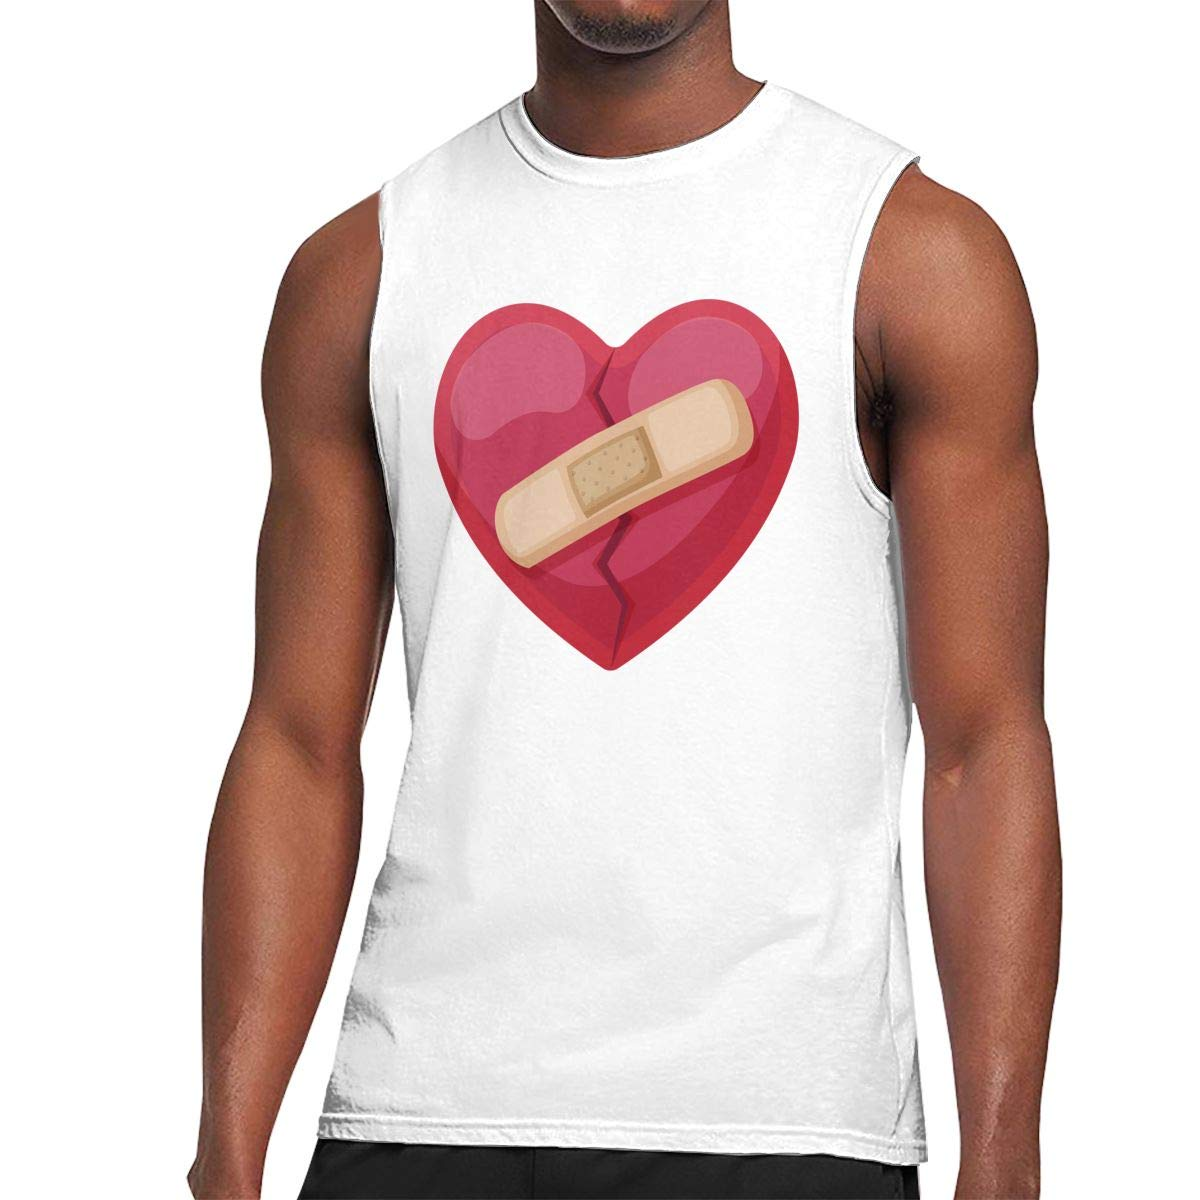 S Muscle Tank Top Softball Valentines Day Love Gym Trainingtech Running Activewear Shirts